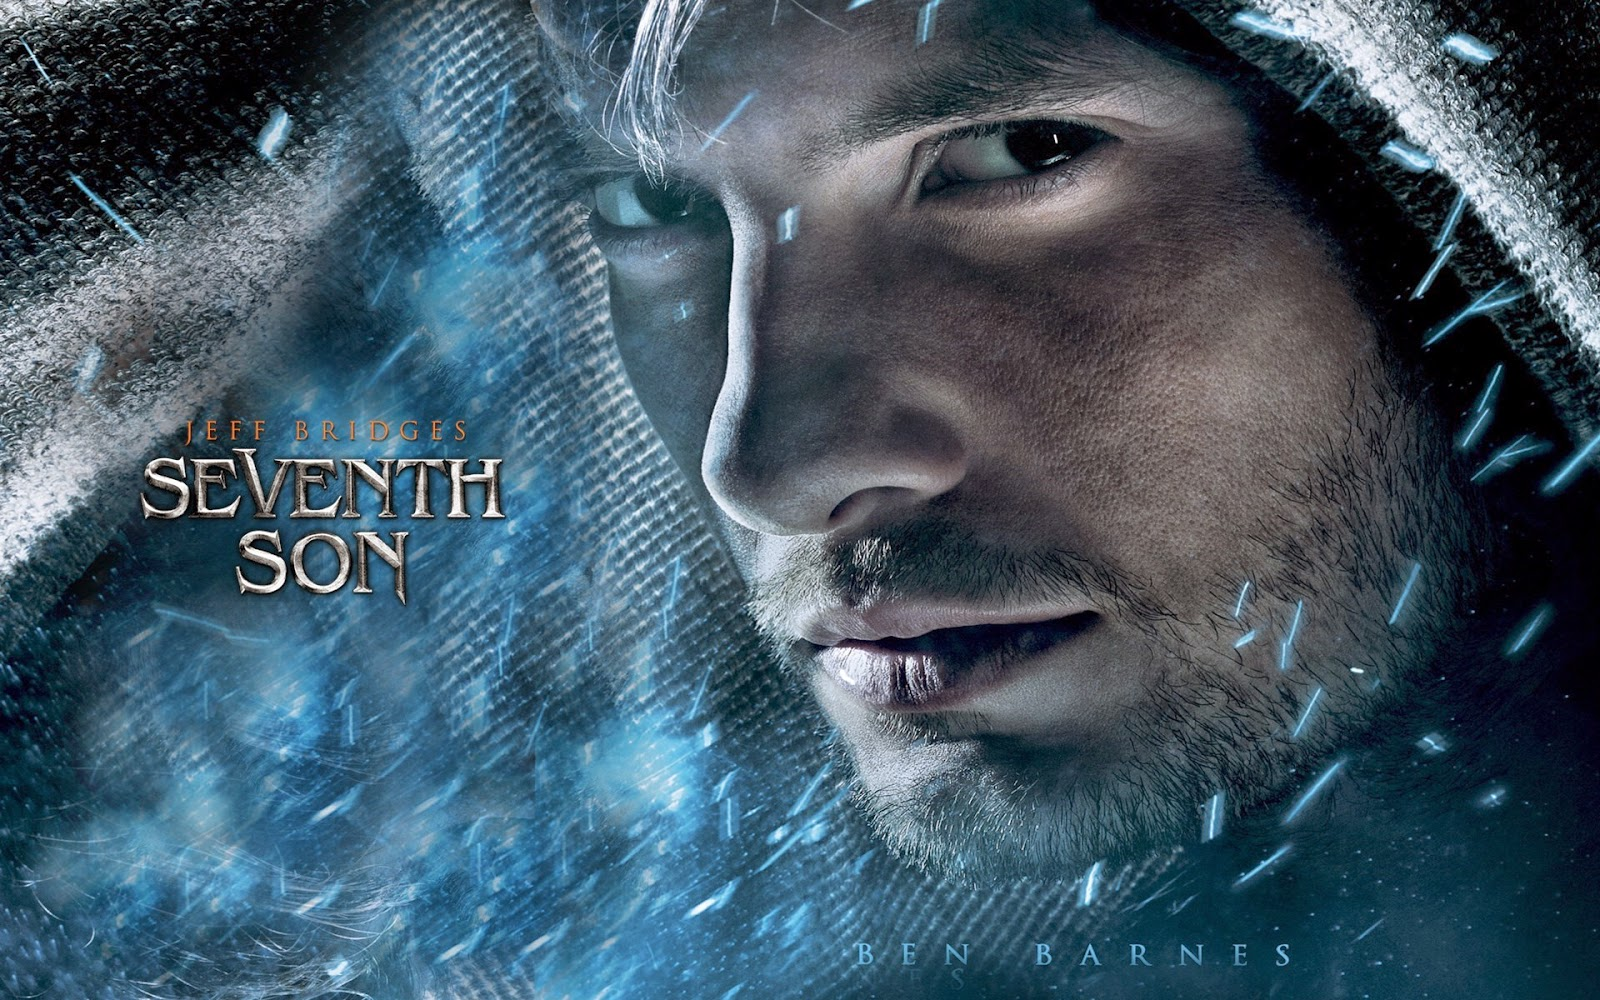 Free Movies Online: Seventh Son 2014 Hollywood free movies online